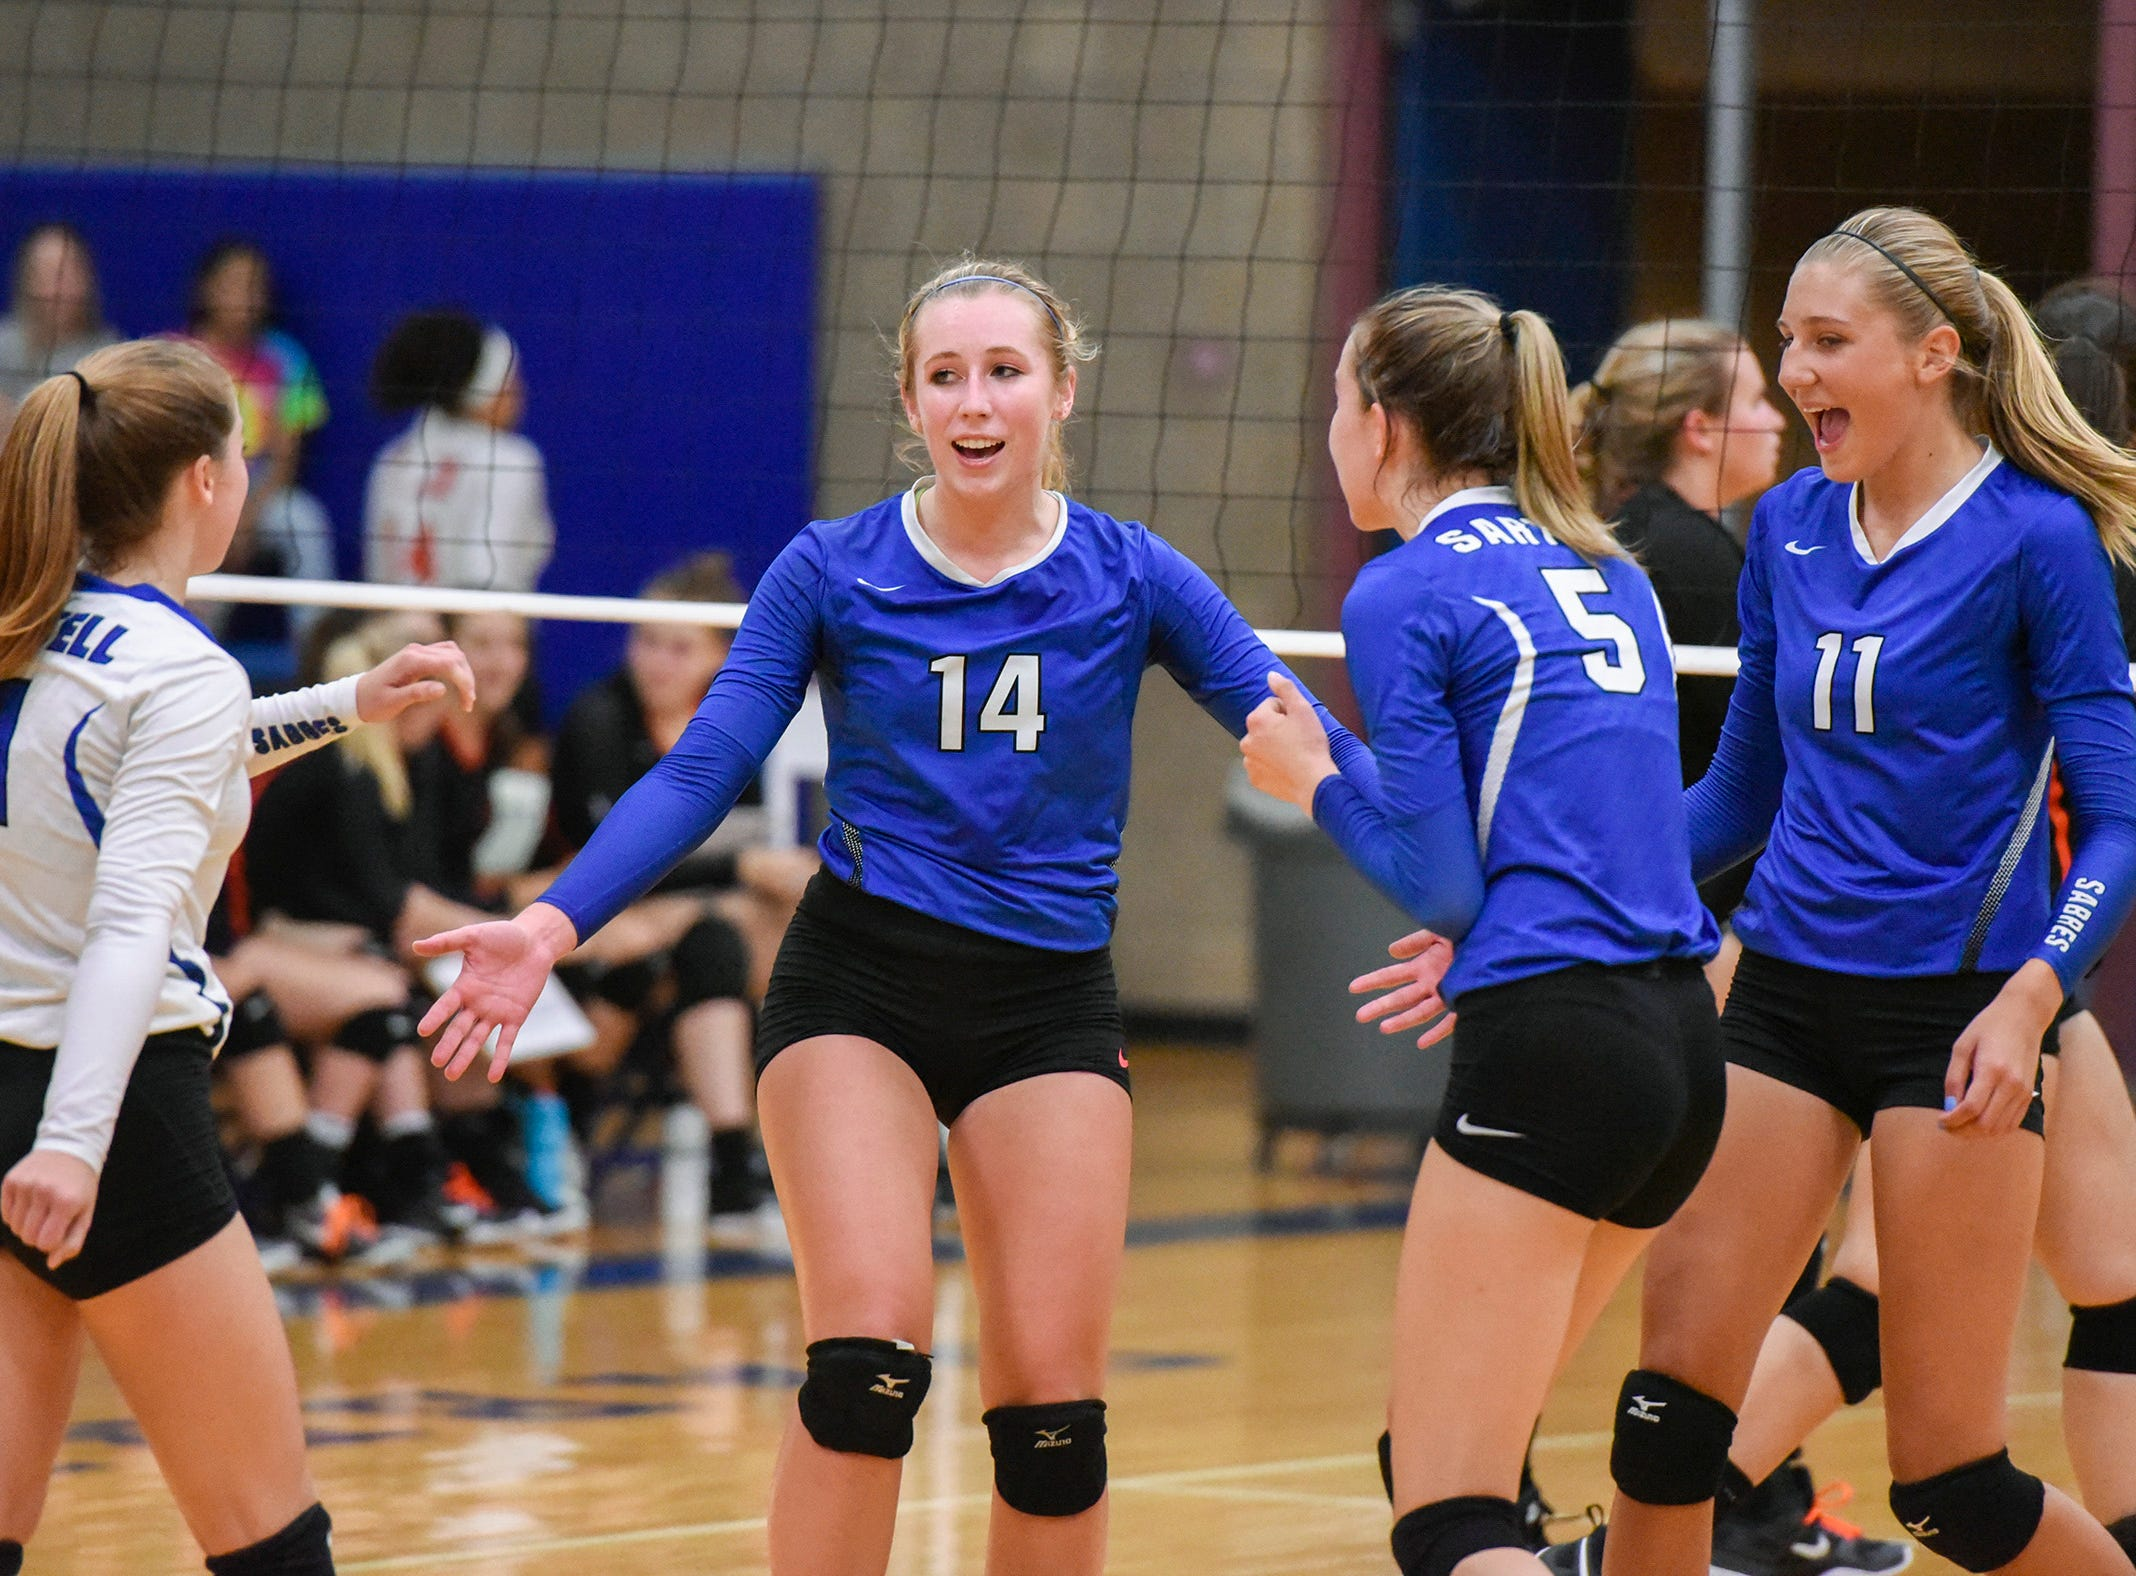 Sartell's Miah Gessell, 14, celebrates a point against Tech during the second game Tuesday, Sept. 11, in Sartell